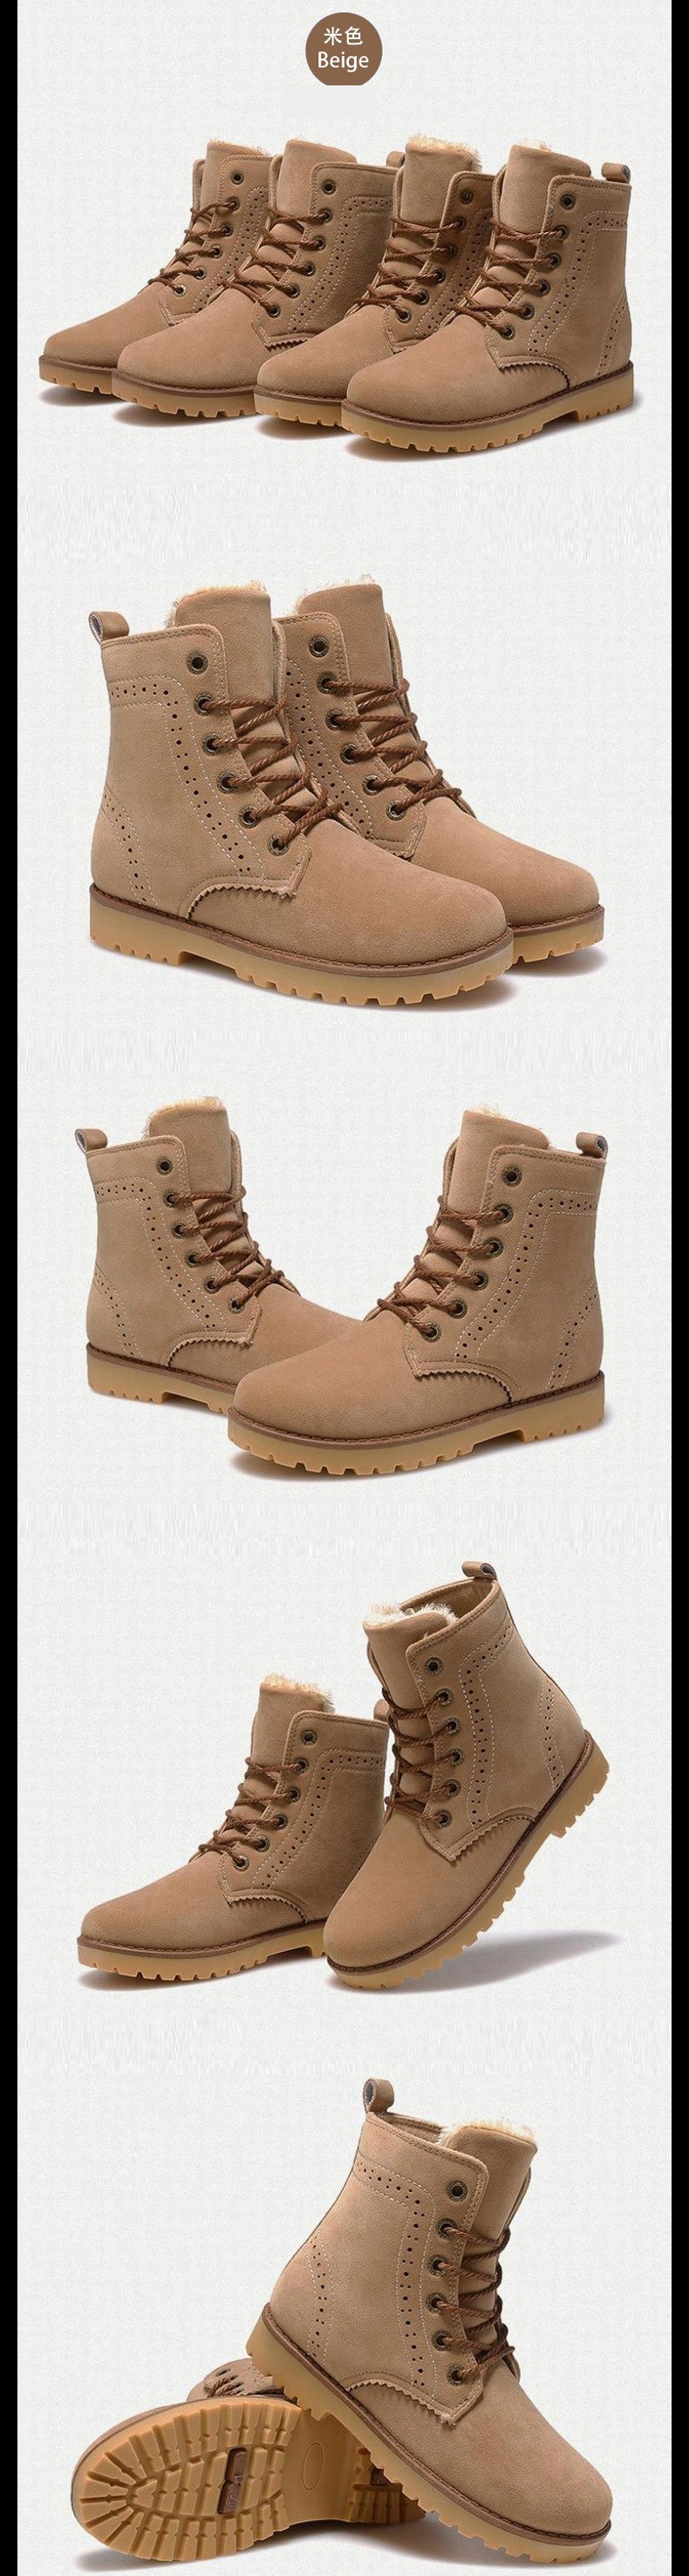 3df0be09a68 2015 fashion winter shoes women's winter suede boots for men ladies snow  boot botines mujer chaussure femme | #FASHONBOOTS #HIGHHEELBOOTS